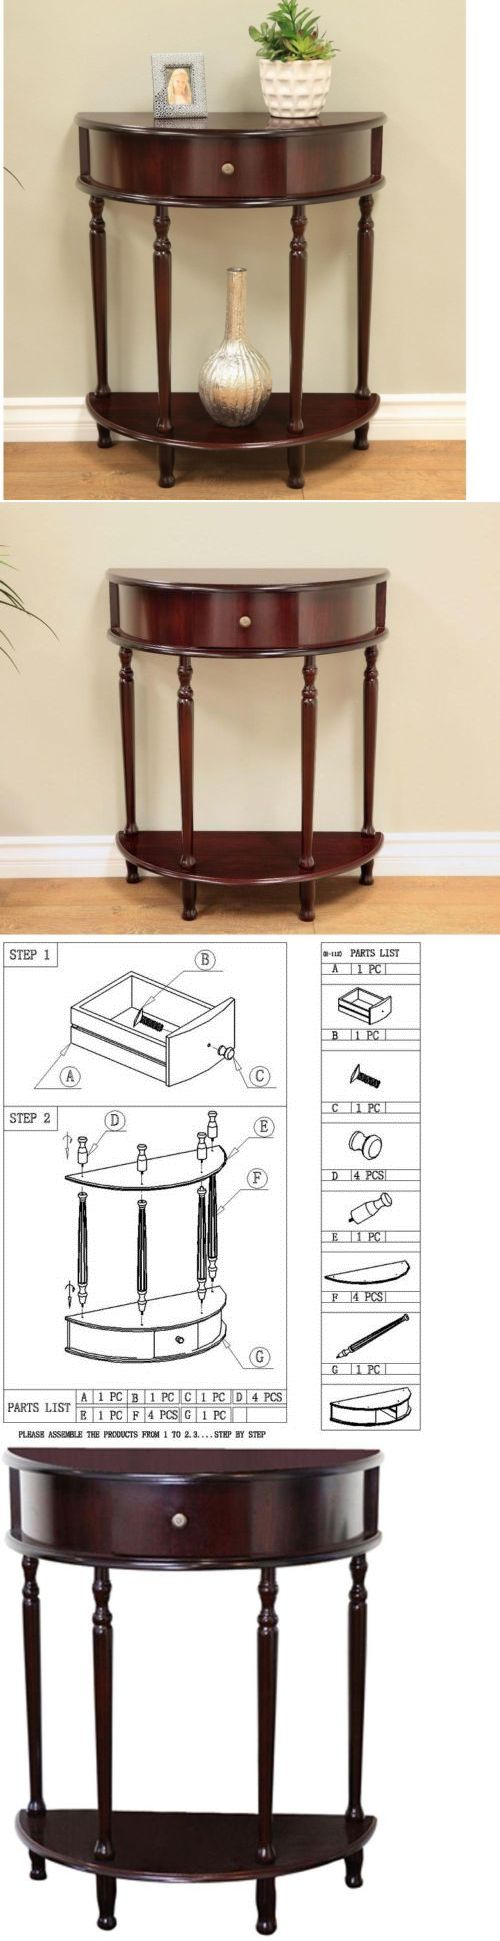 Tables 38204: Cherry Storage End Table Side Stand Furniture Drawer Hallway Console Entryway -> BUY IT NOW ONLY: $61.21 on eBay!